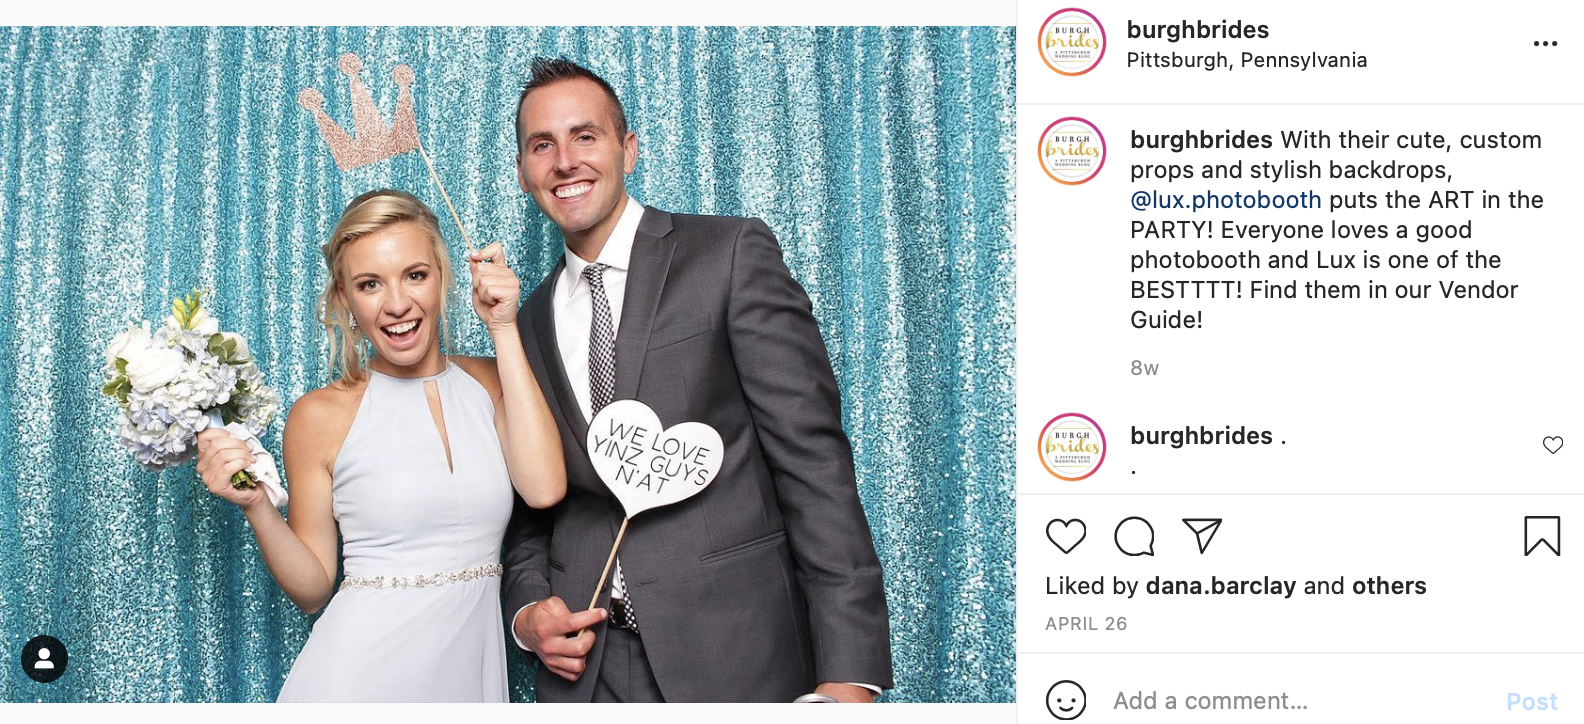 wedding guests pose with props in a photo booth